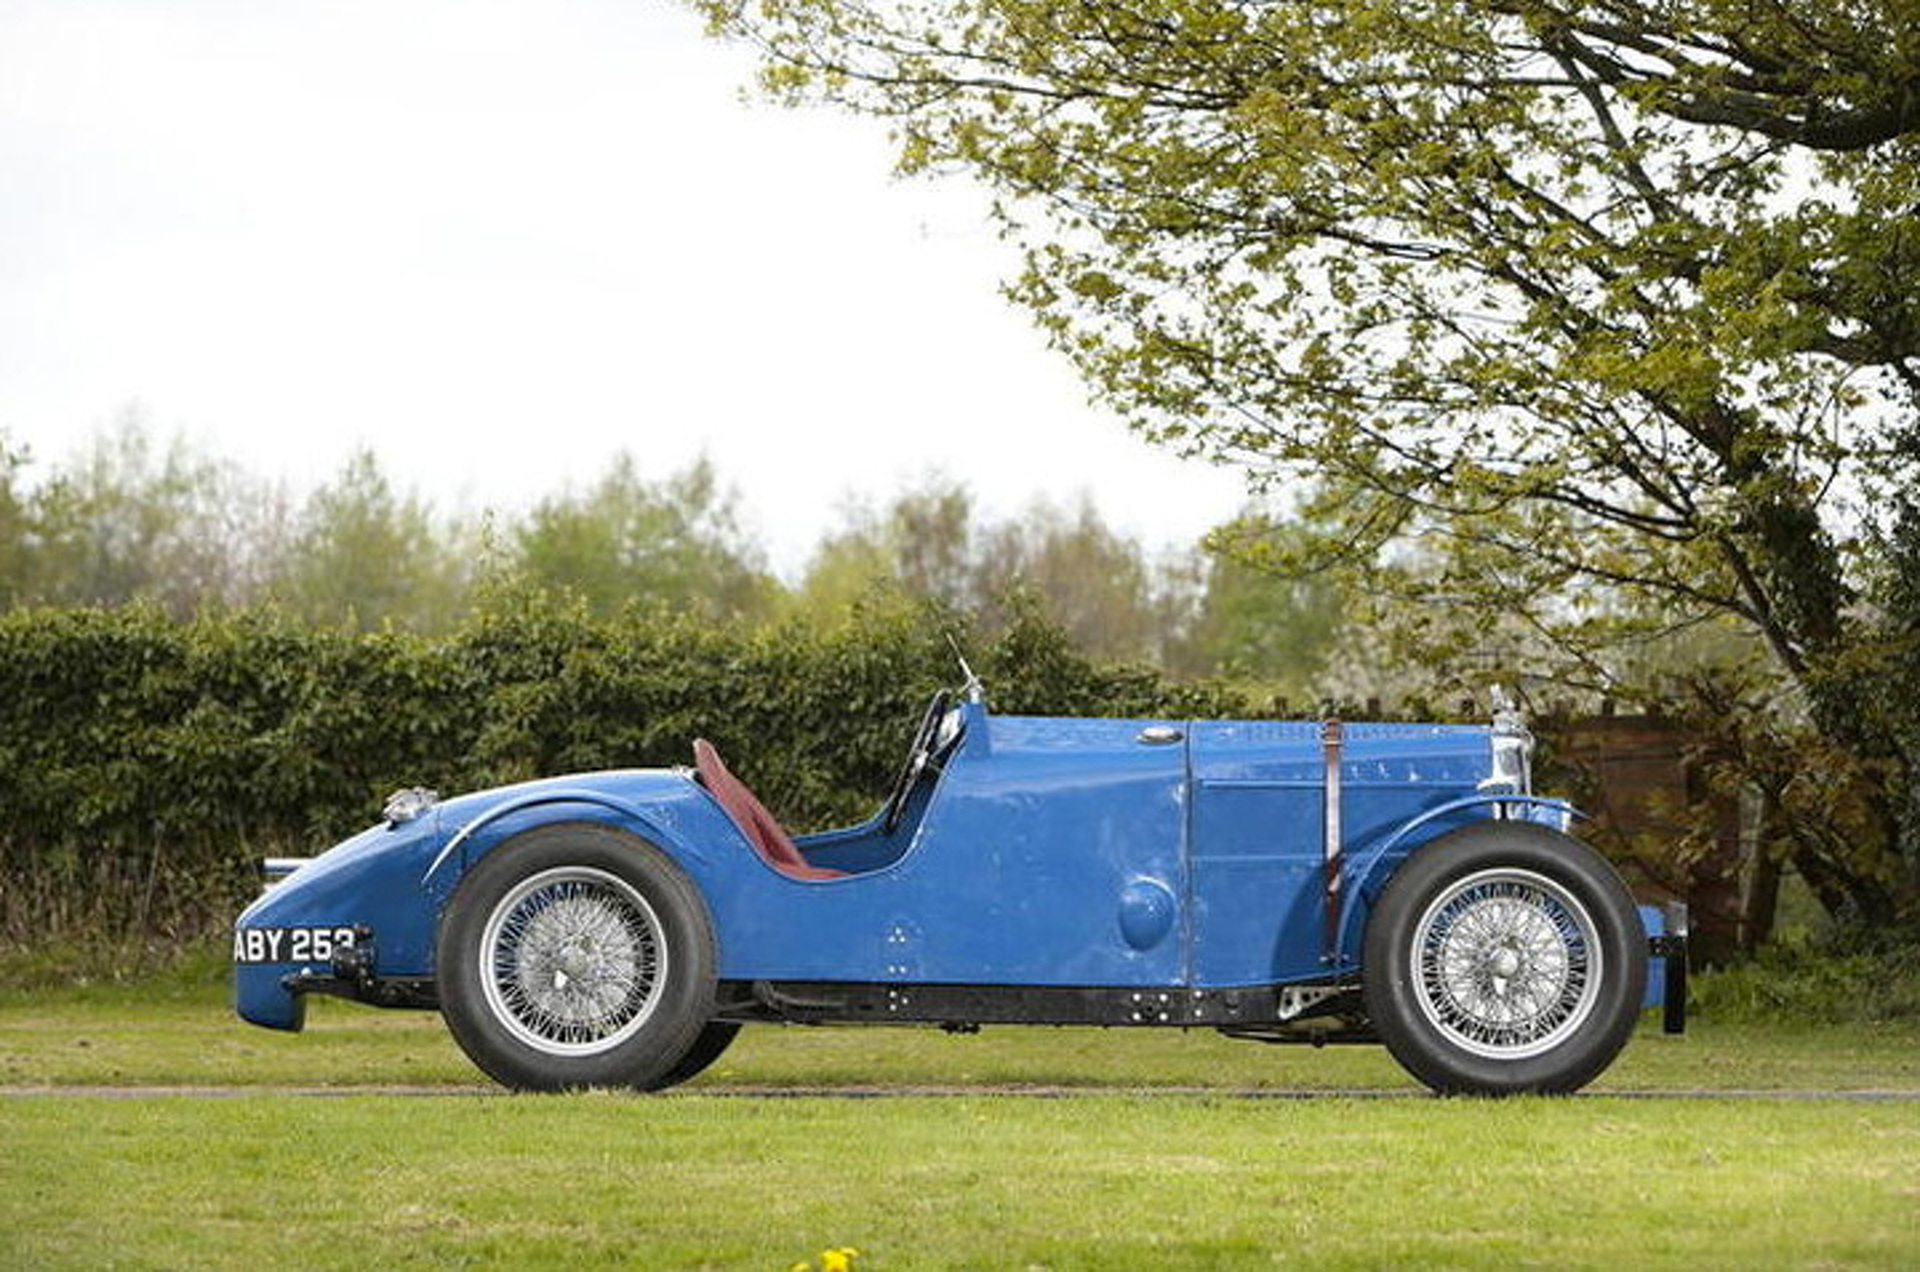 This Rare MG Magnette Sold for $130K At Auction